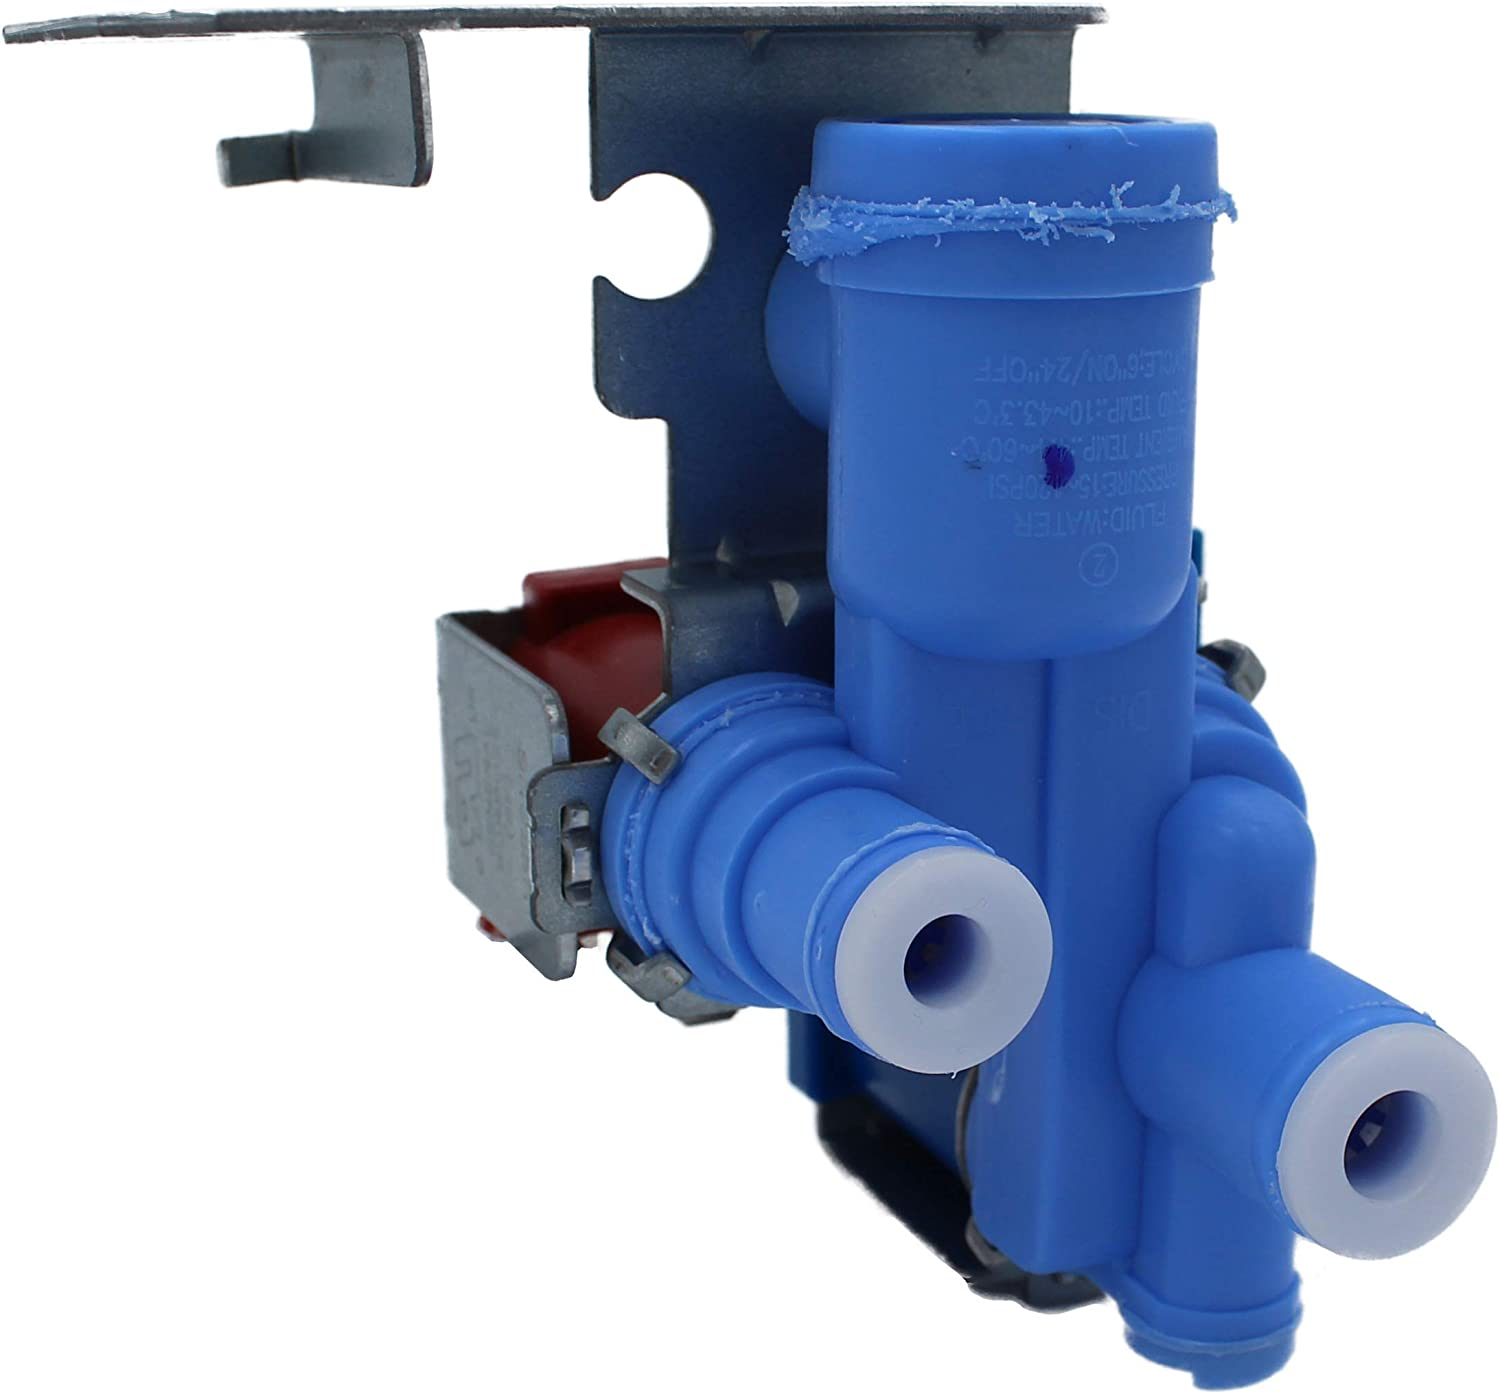 Supplying Demand WR57X10070 Water Valve For Refrigerator Compatible With GE